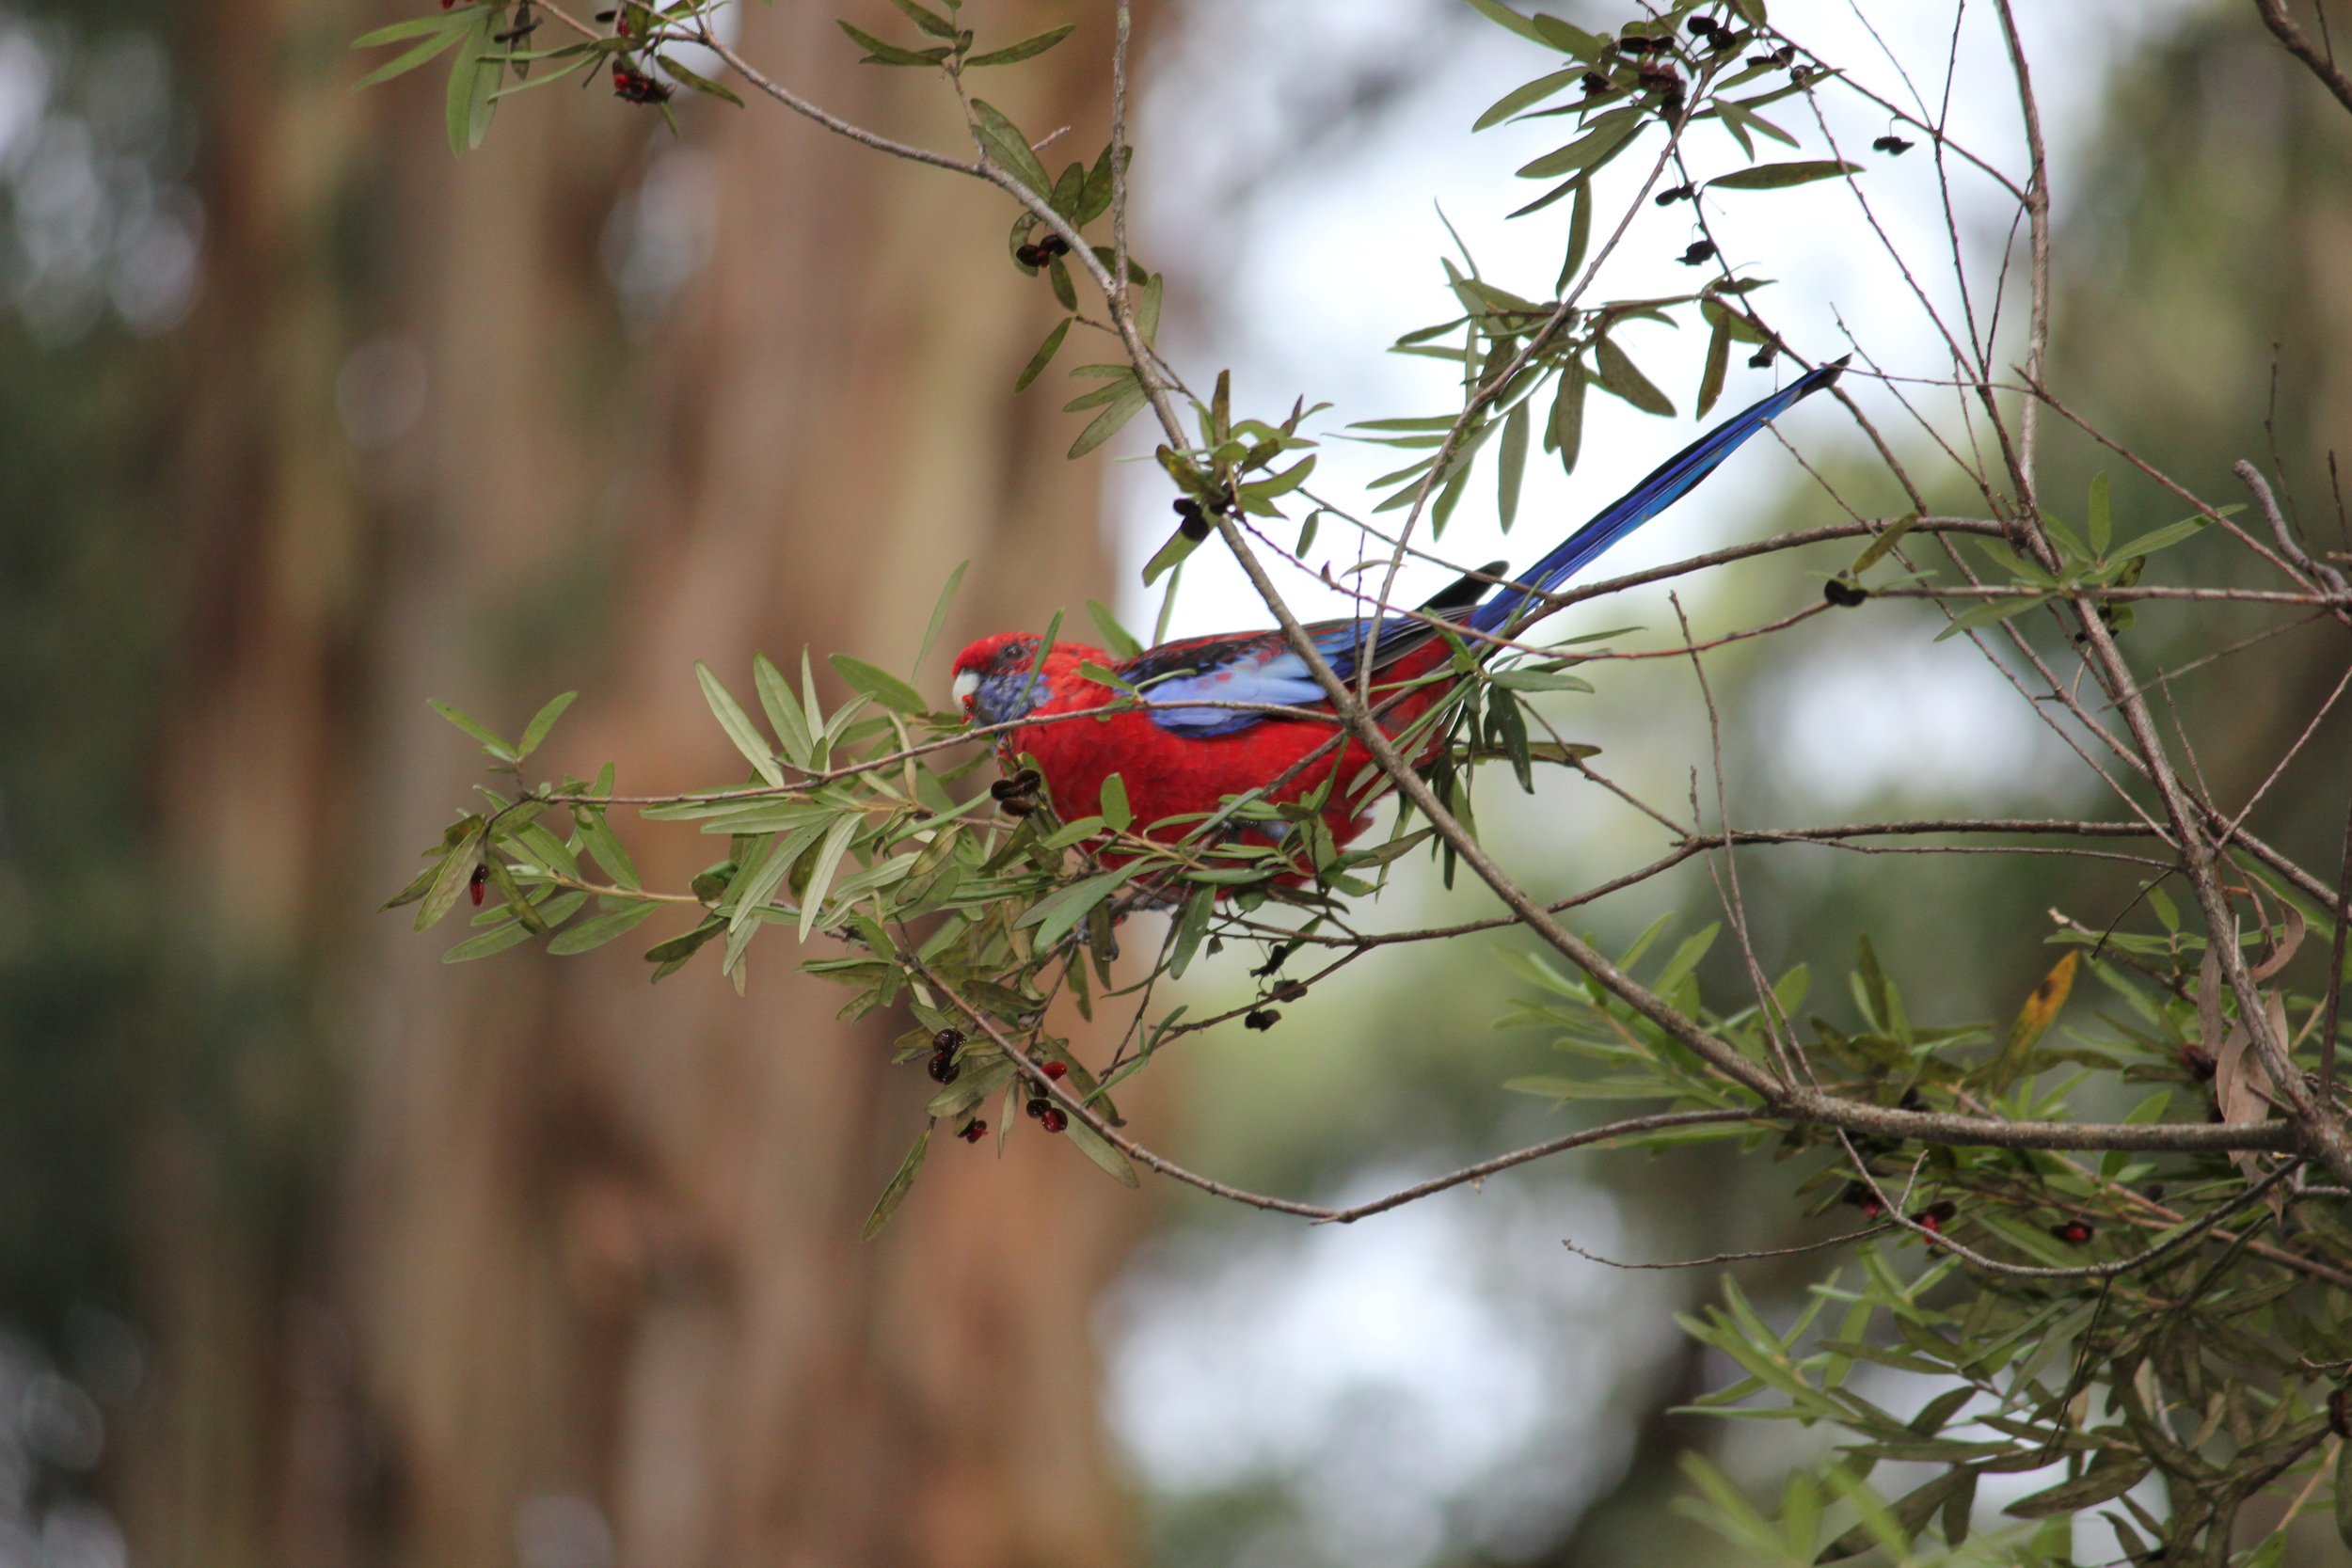 Crimson Rosellas are common in the forests of Victoria. While juveniles have mostly green plumage, they become brilliantly red as adults like the individual seen here.